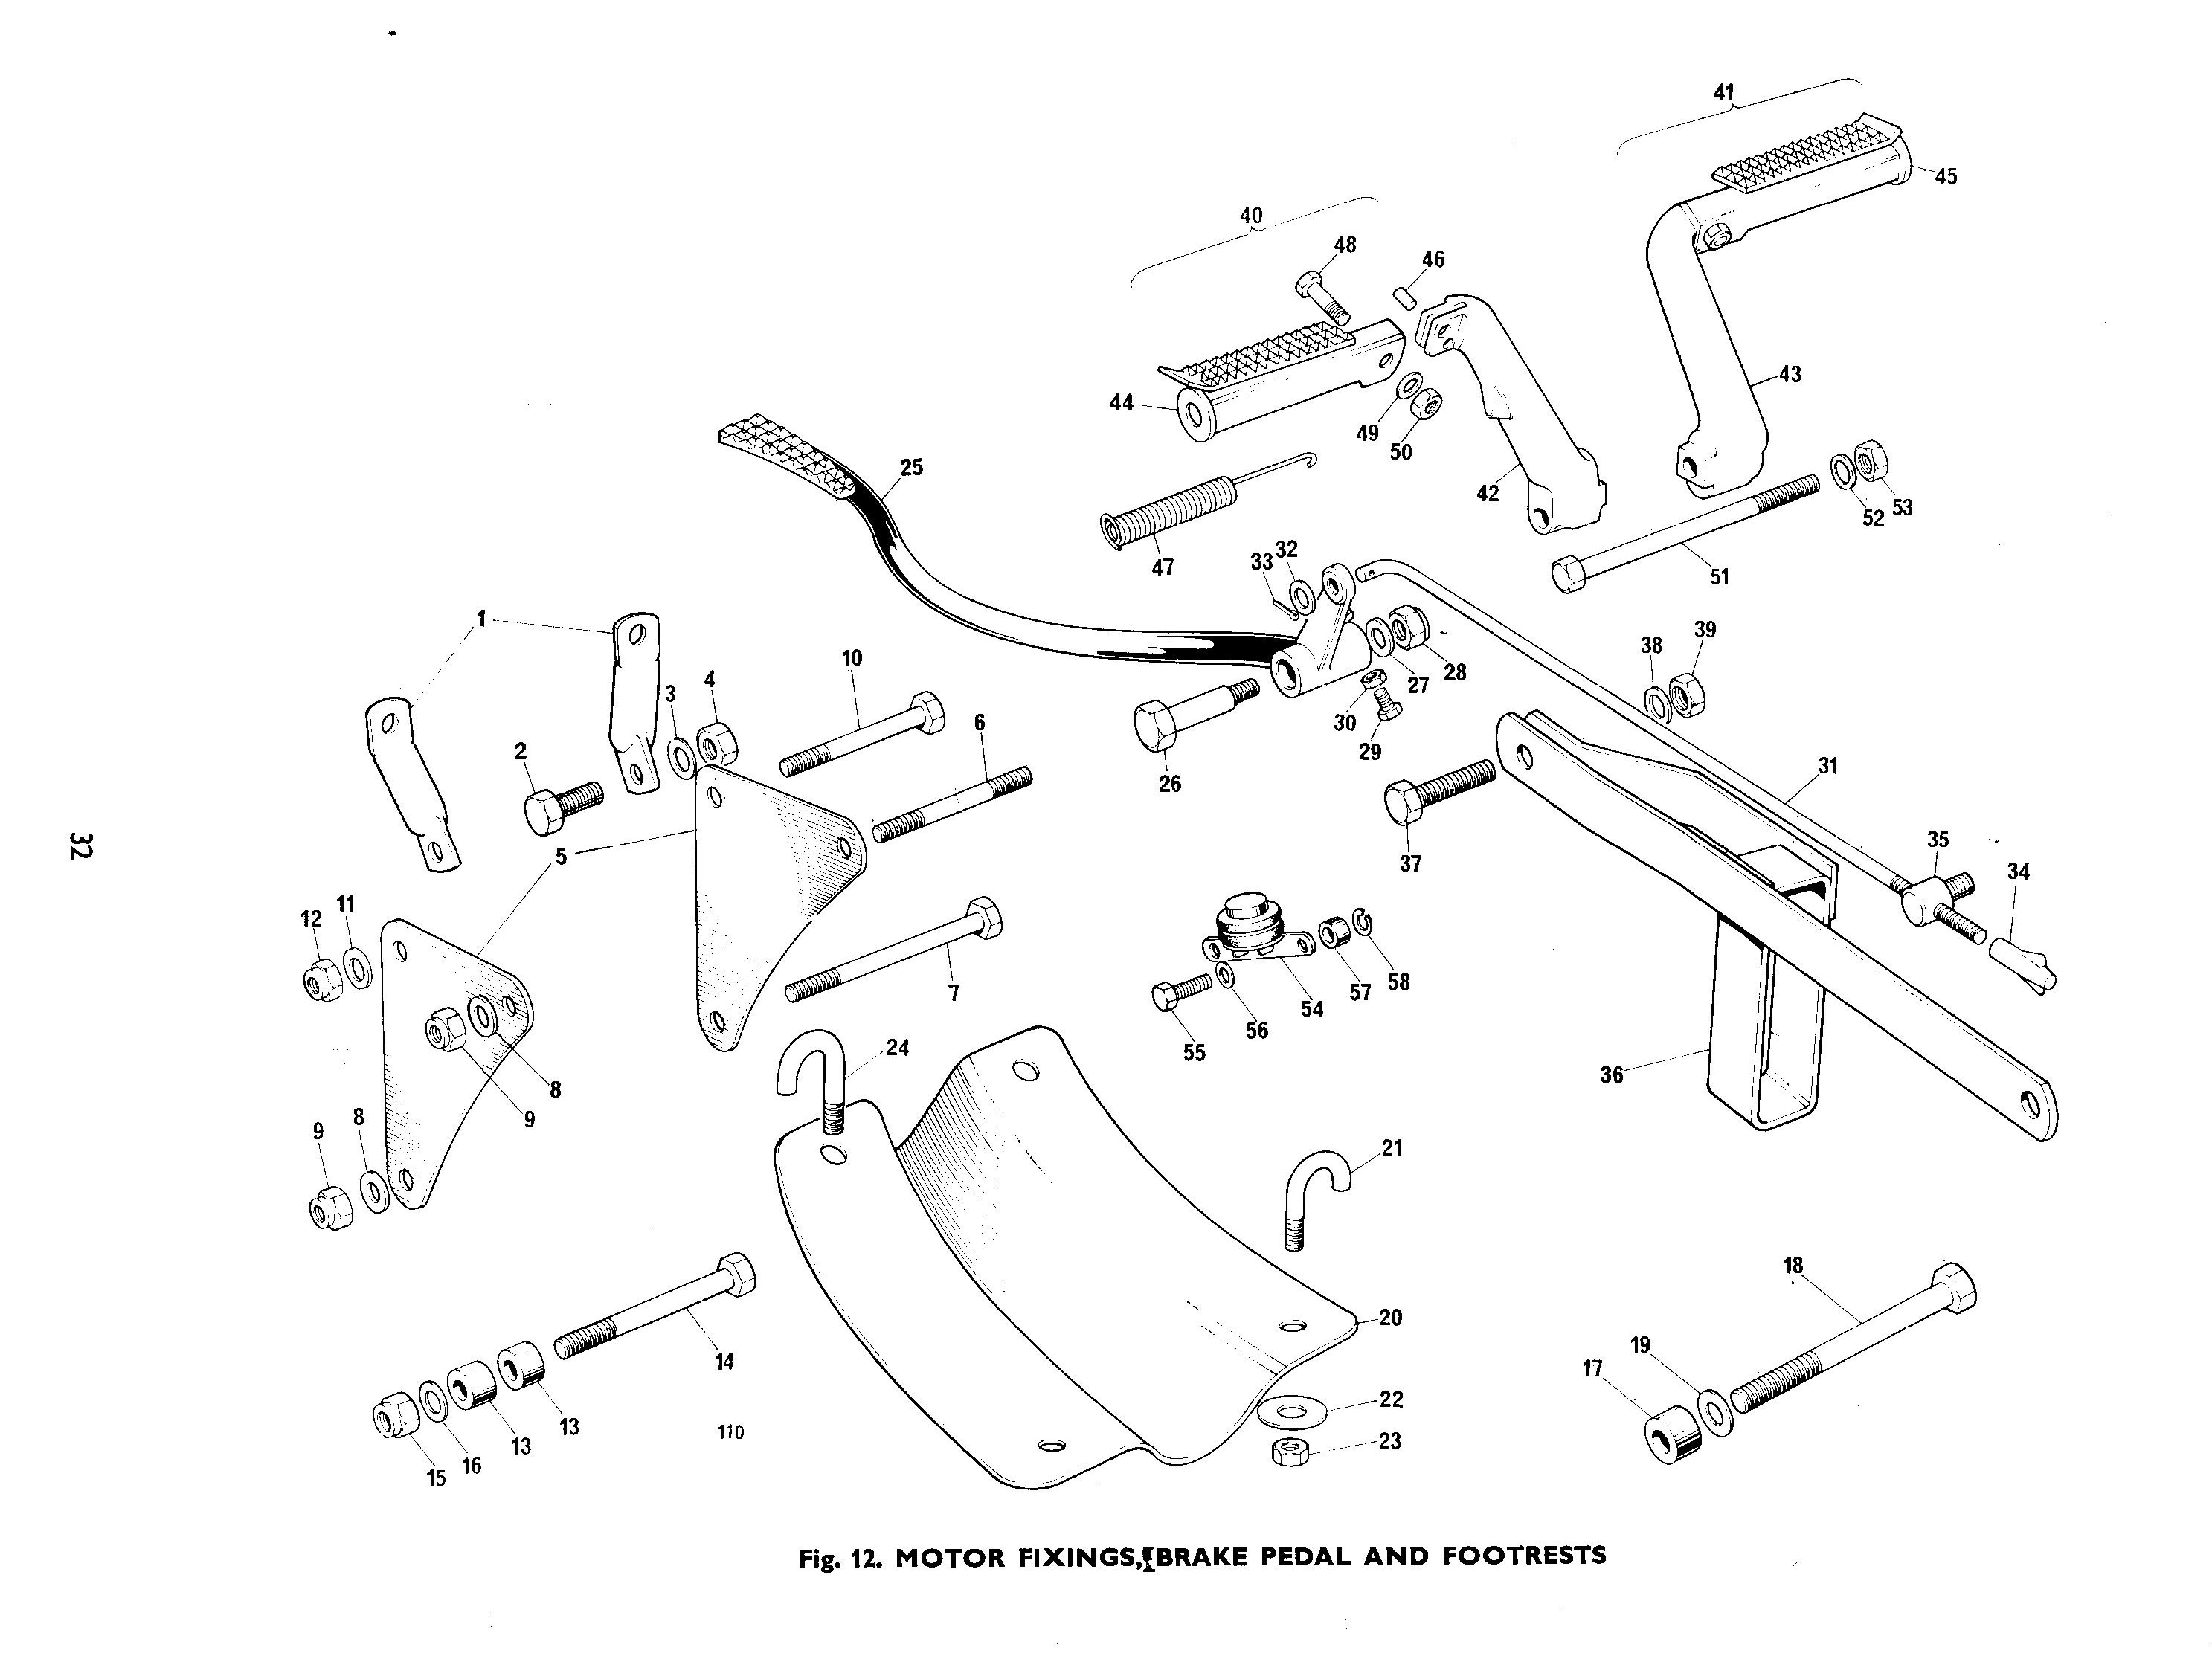 Triumph Tr5t Wiring Diagram For Motorcycle Schematics 1969 Tympanium Trophy Trail Rear Brake Chain Guide Torque Arm Rh Classicbikepartsuk Uk 1970 Spitfire Tiger